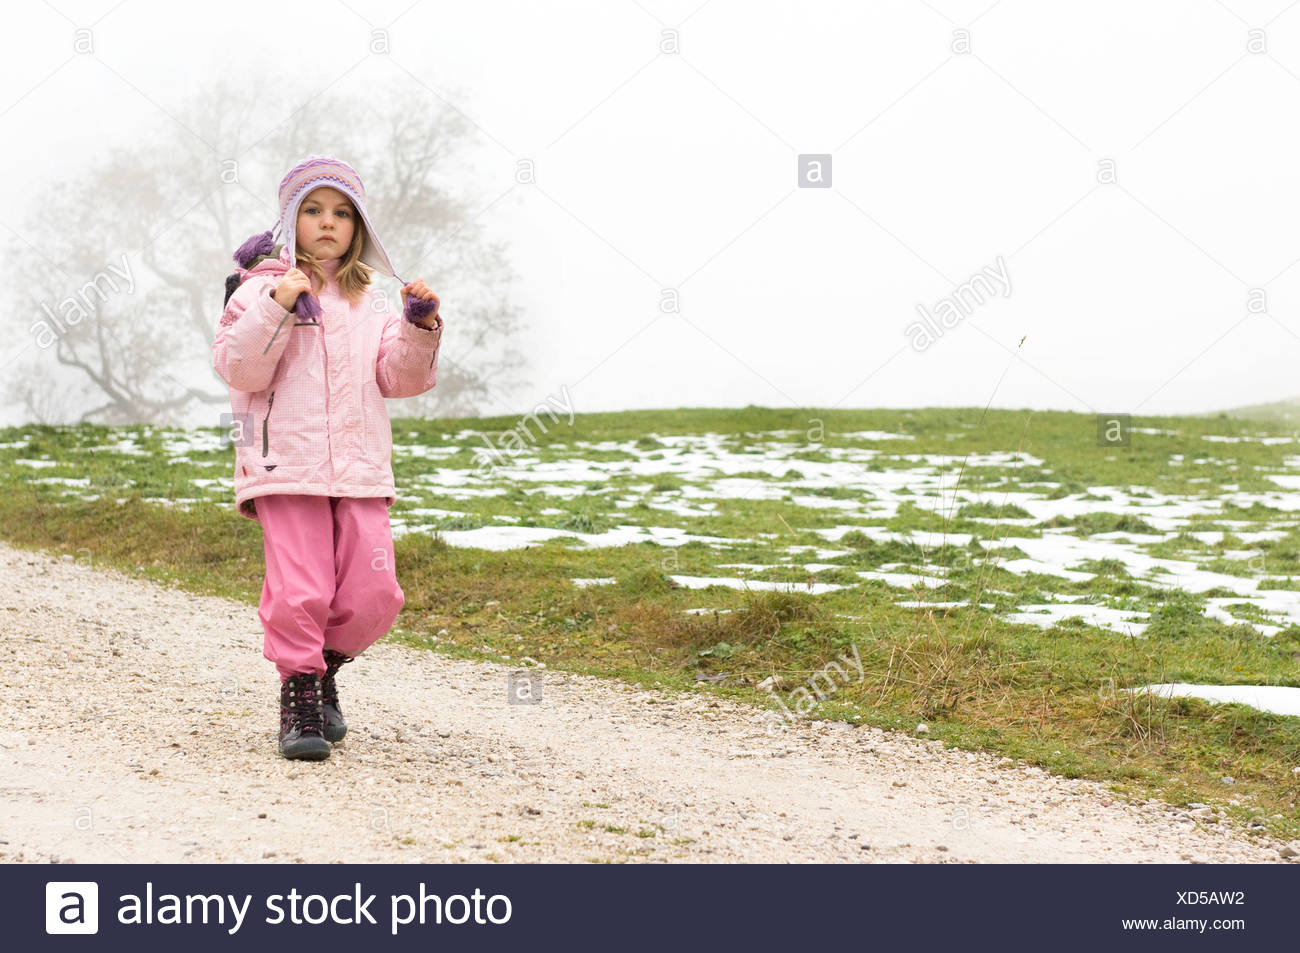 young girl walking on path in winter - Stock Image